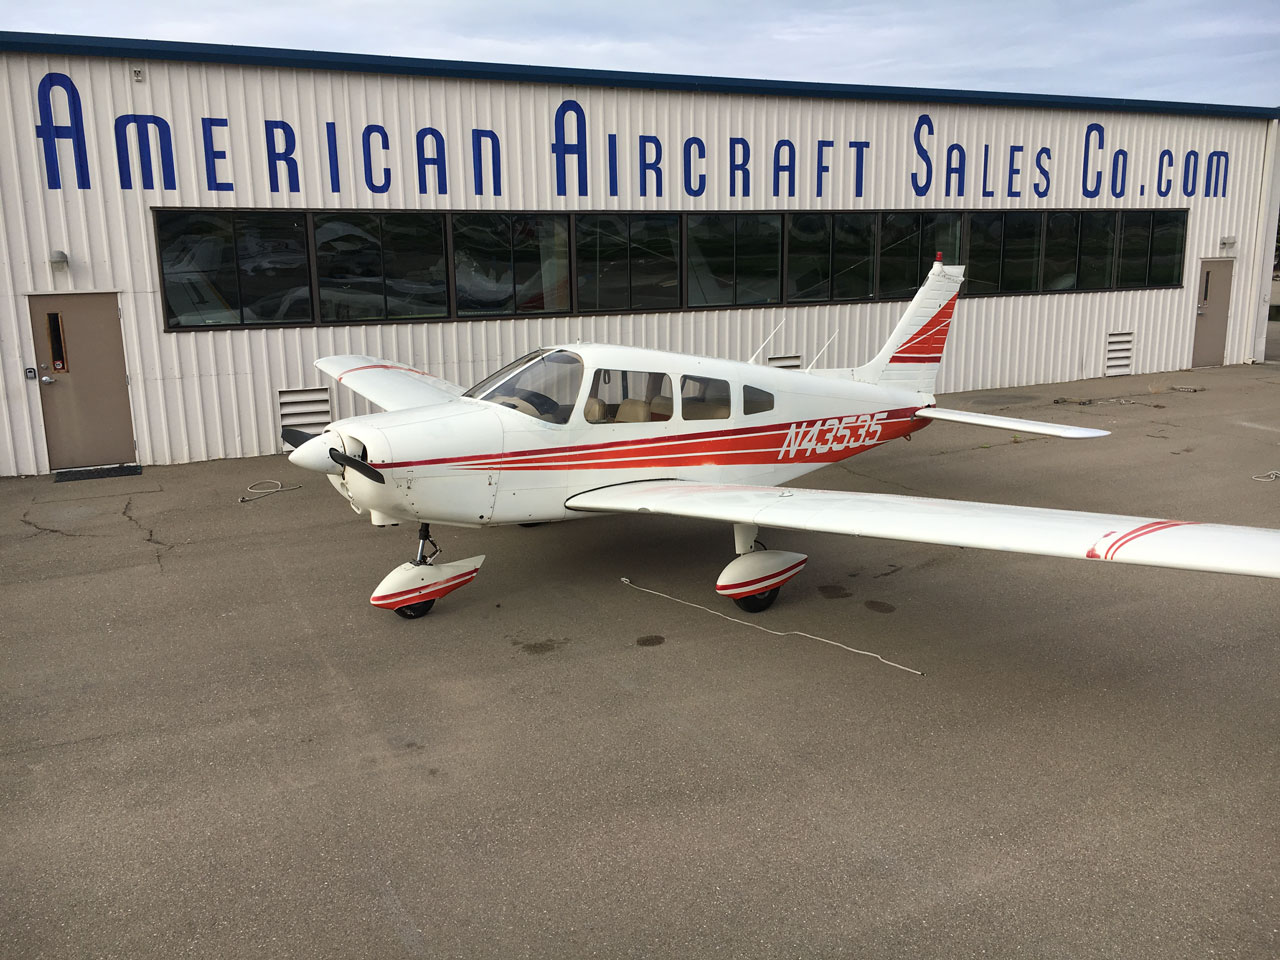 Home - American Aircraft Sales